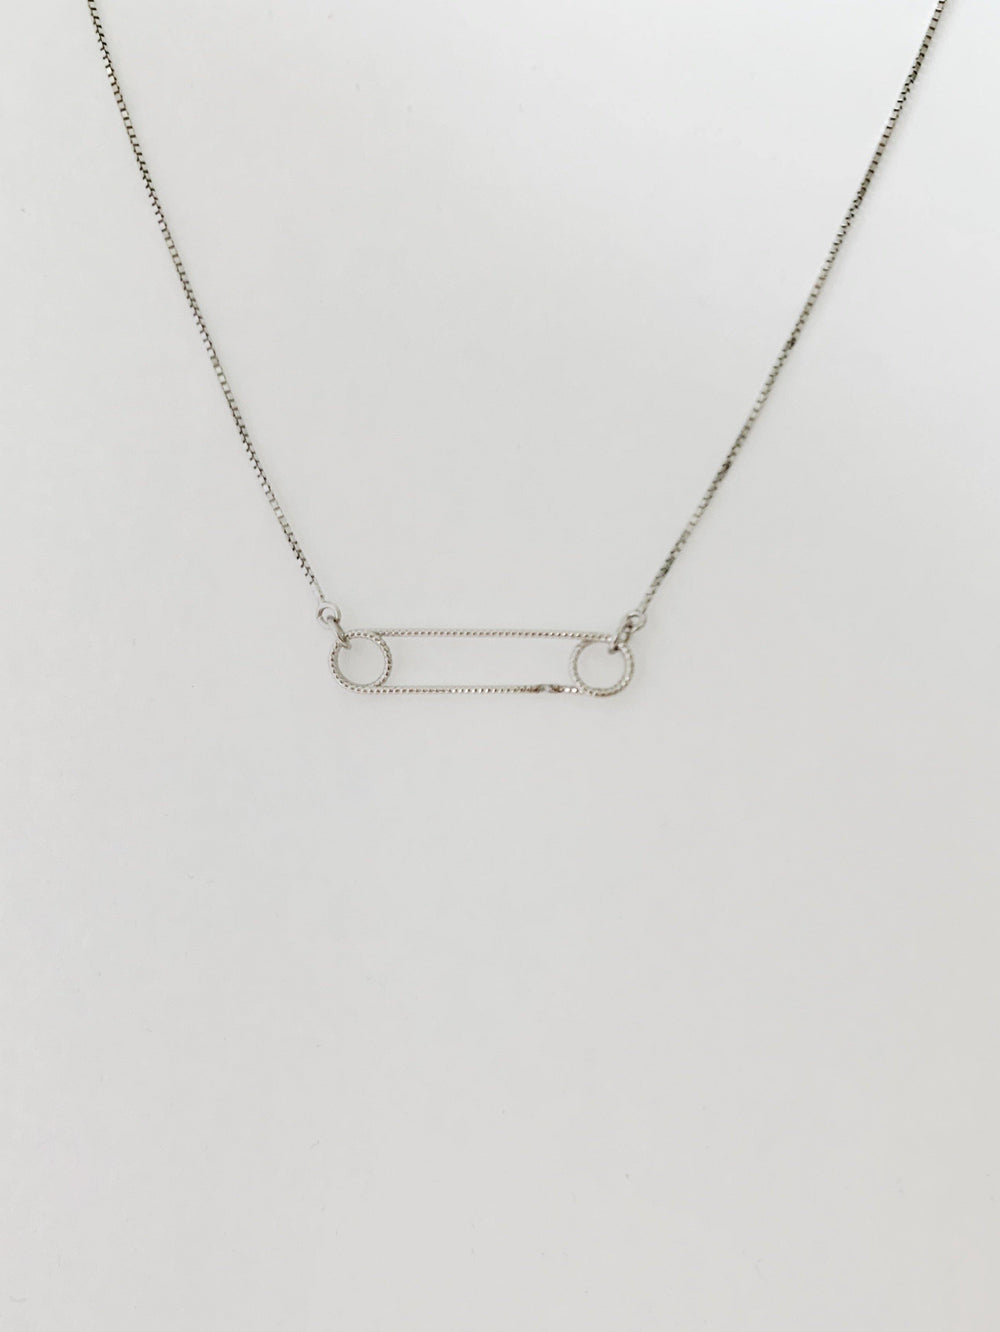 Nya Silver Necklace - Amillis